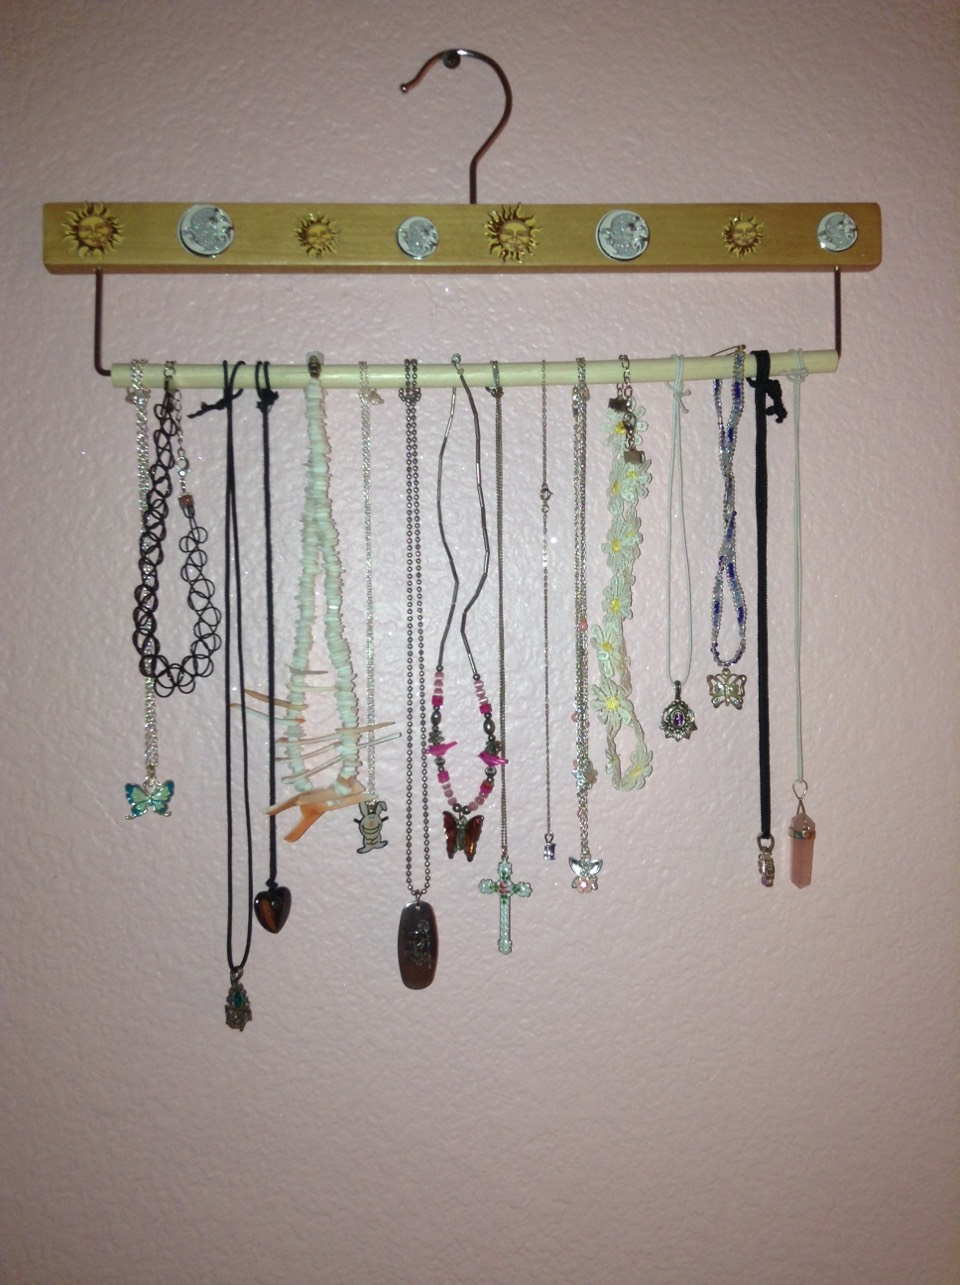 Hang your necklaces on a hanger on the wall